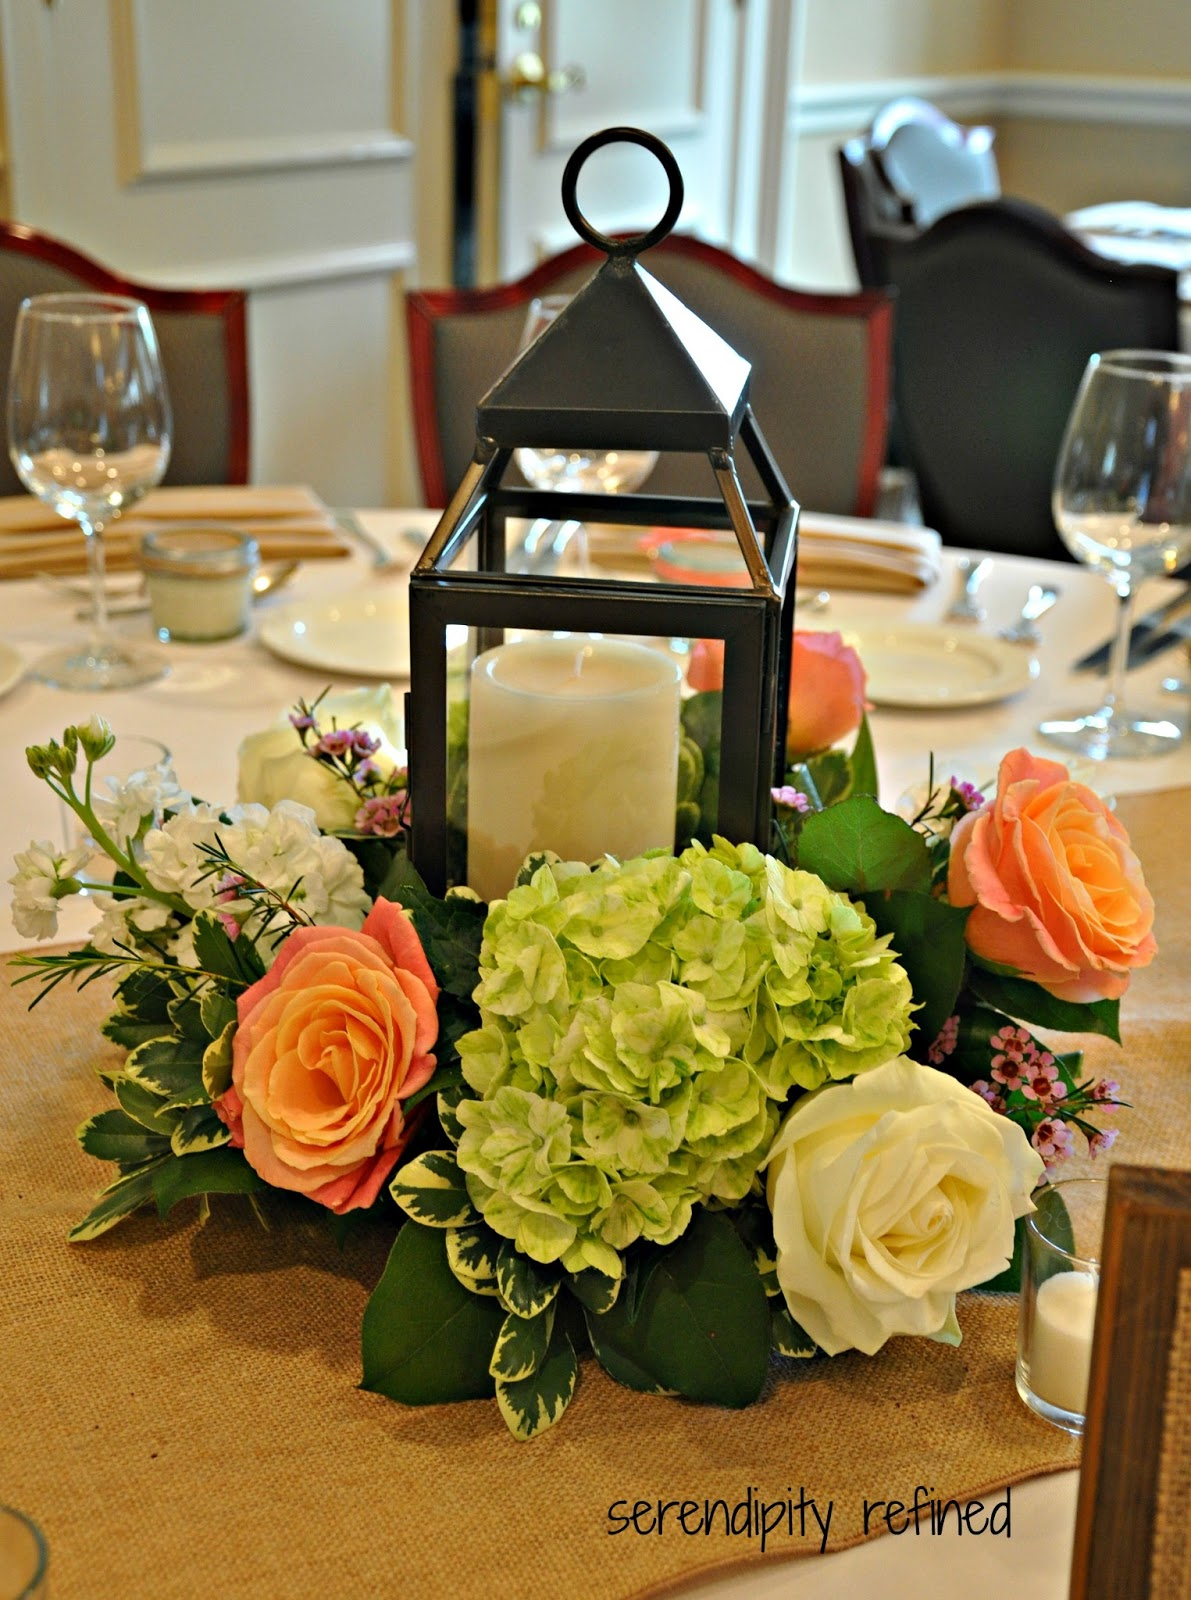 Lantern Centerpiece Images : Serendipity refined wonderful saturday wedding